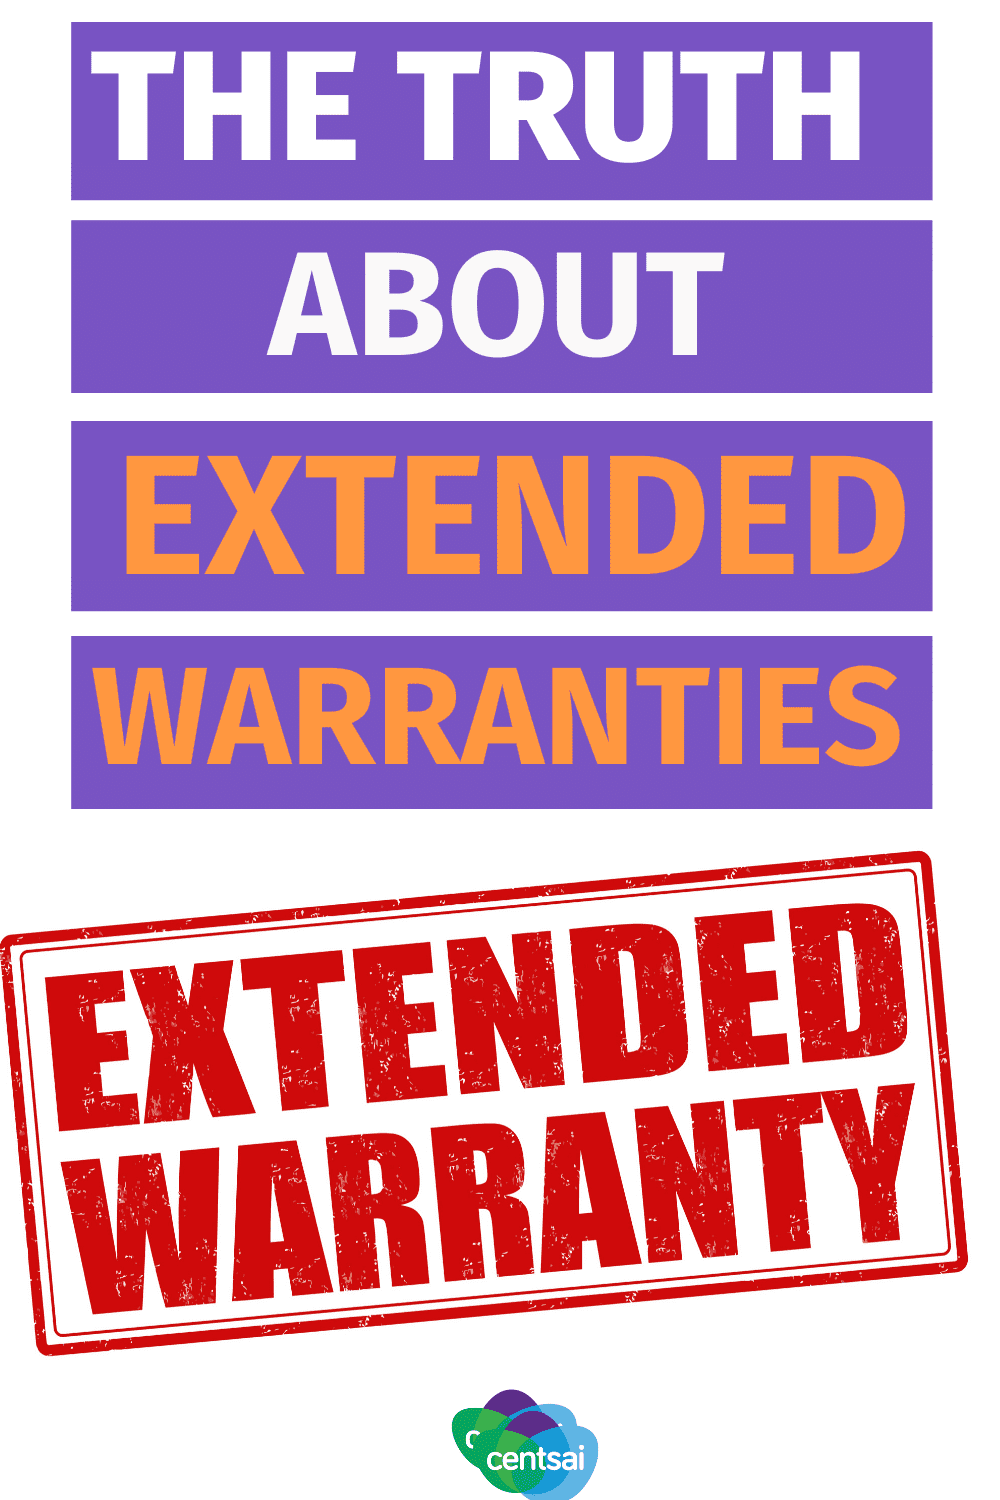 The Truth About Extended Warranties